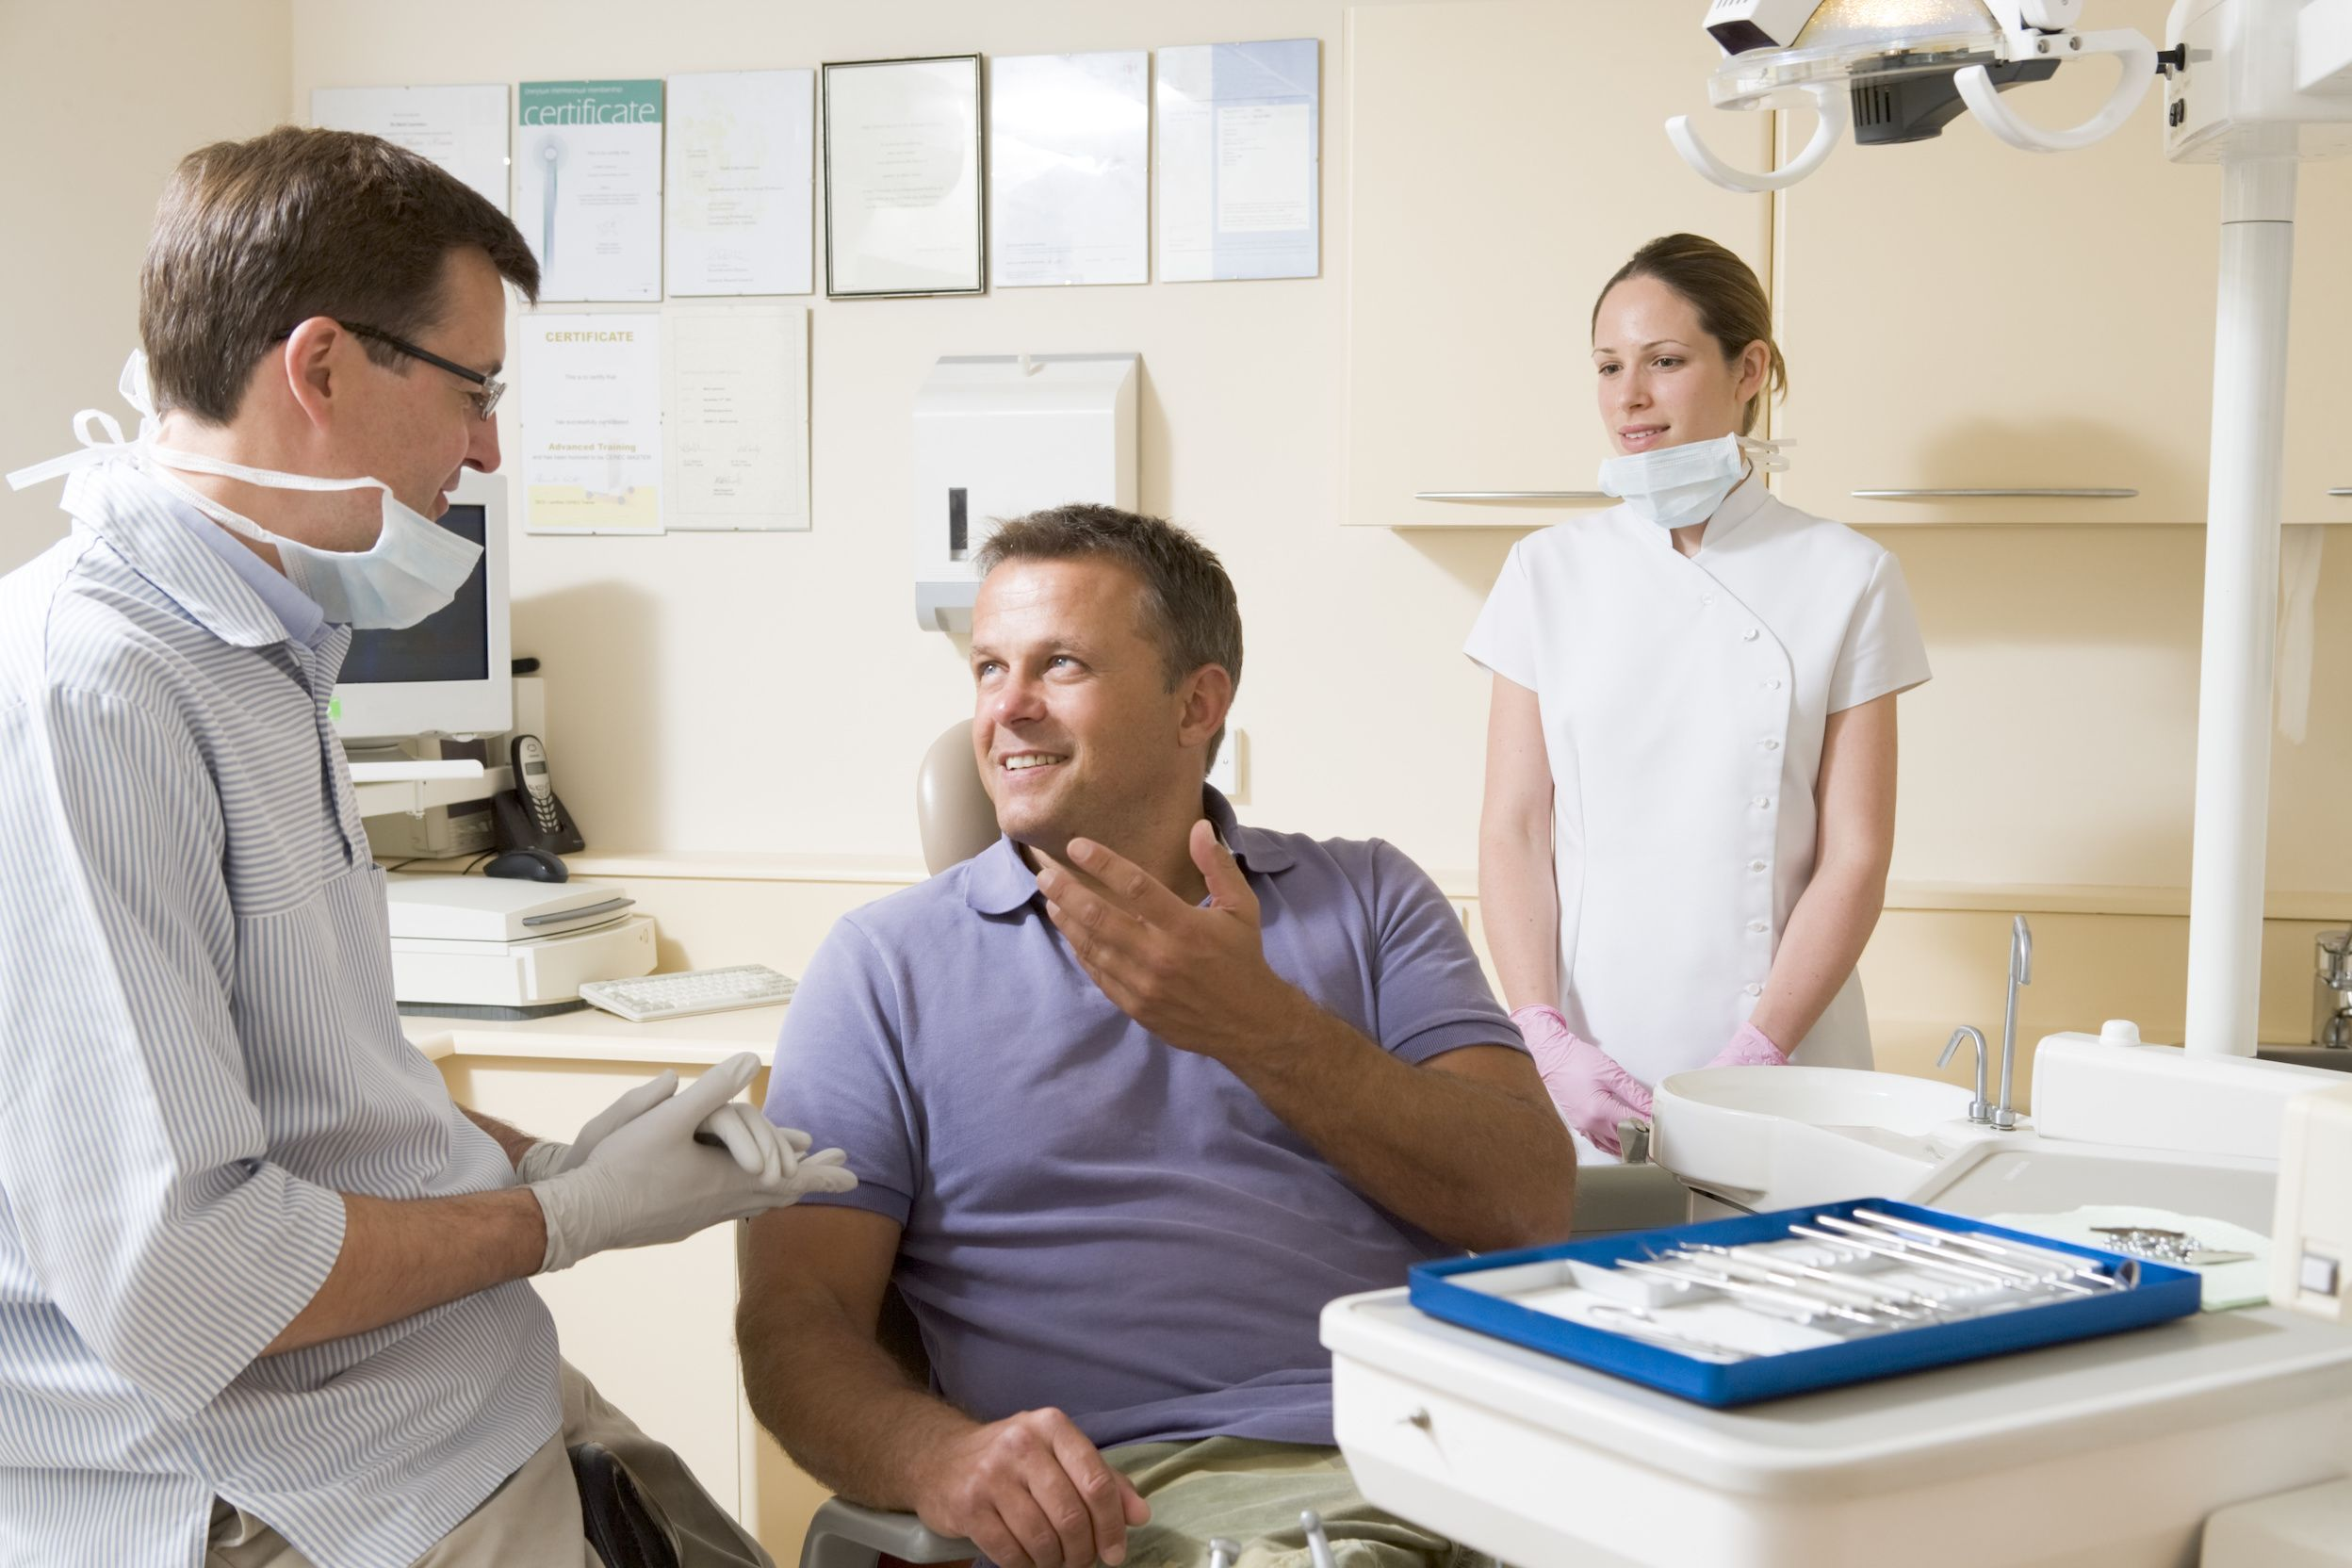 The 10 Criteria To Choose A Top Dental Implant Surgeon